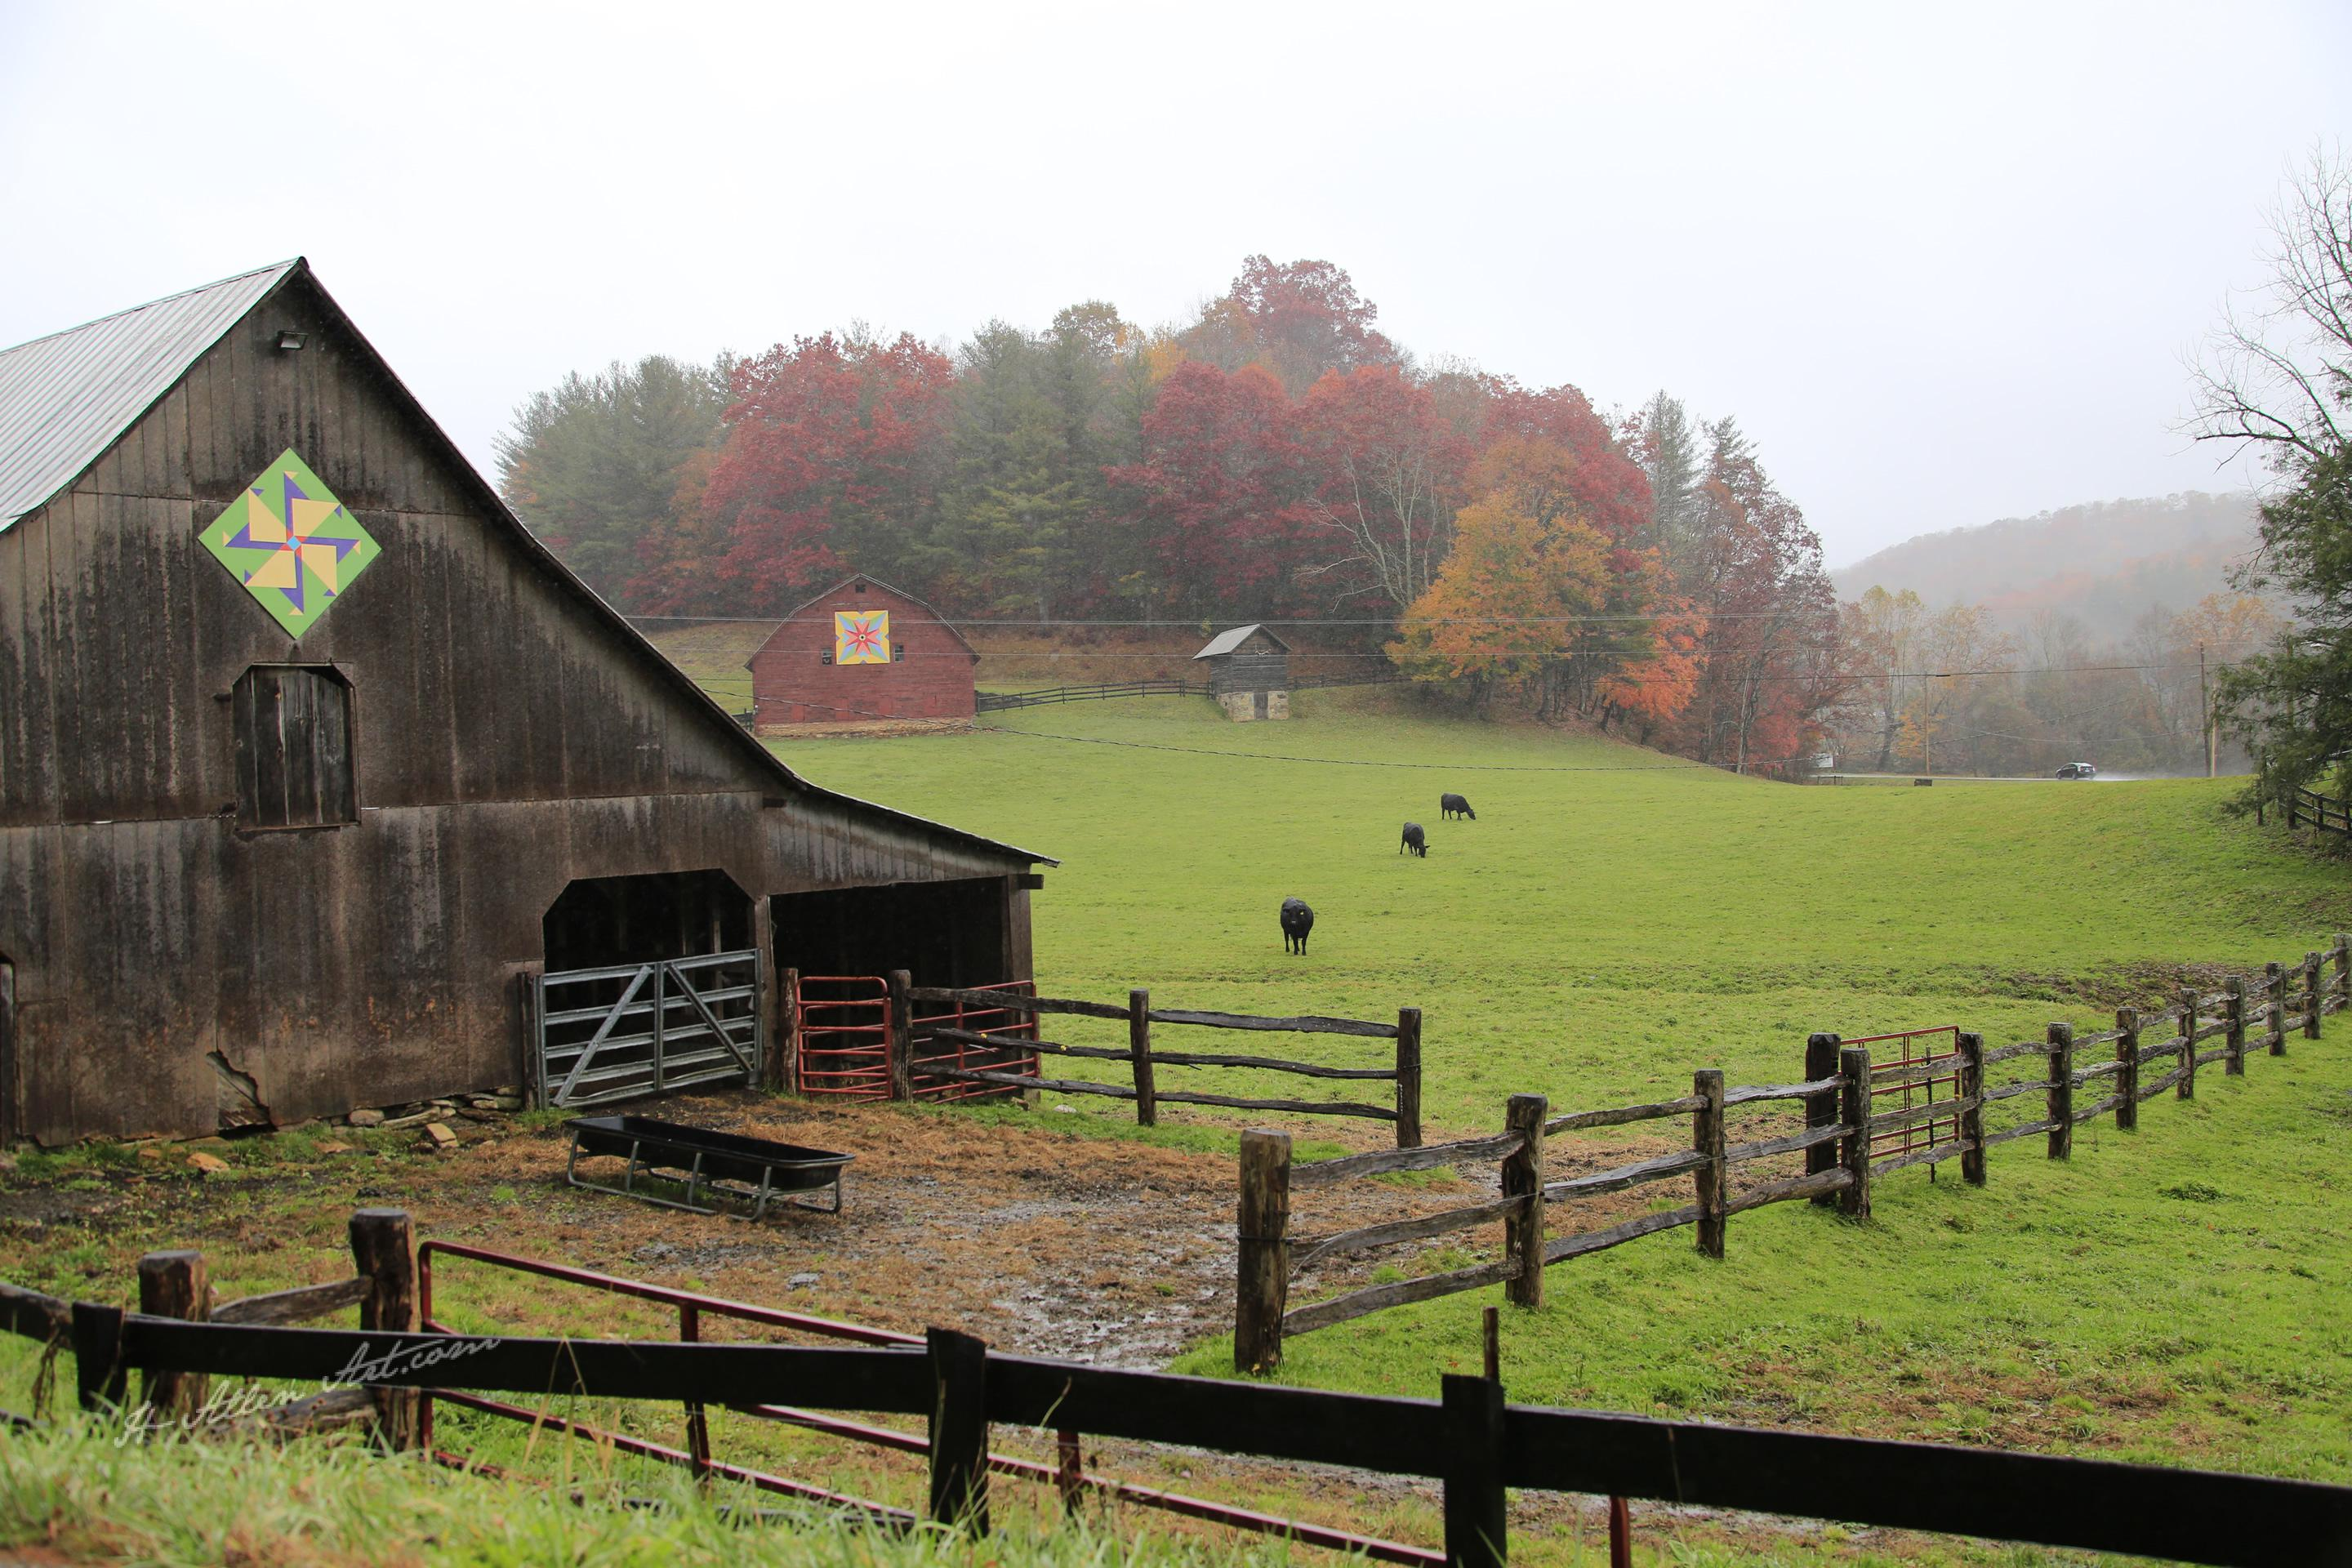 Country Barns & Pasture, Linville Falls Hwy & Stacey Branch Road, Banner Elk,  NC